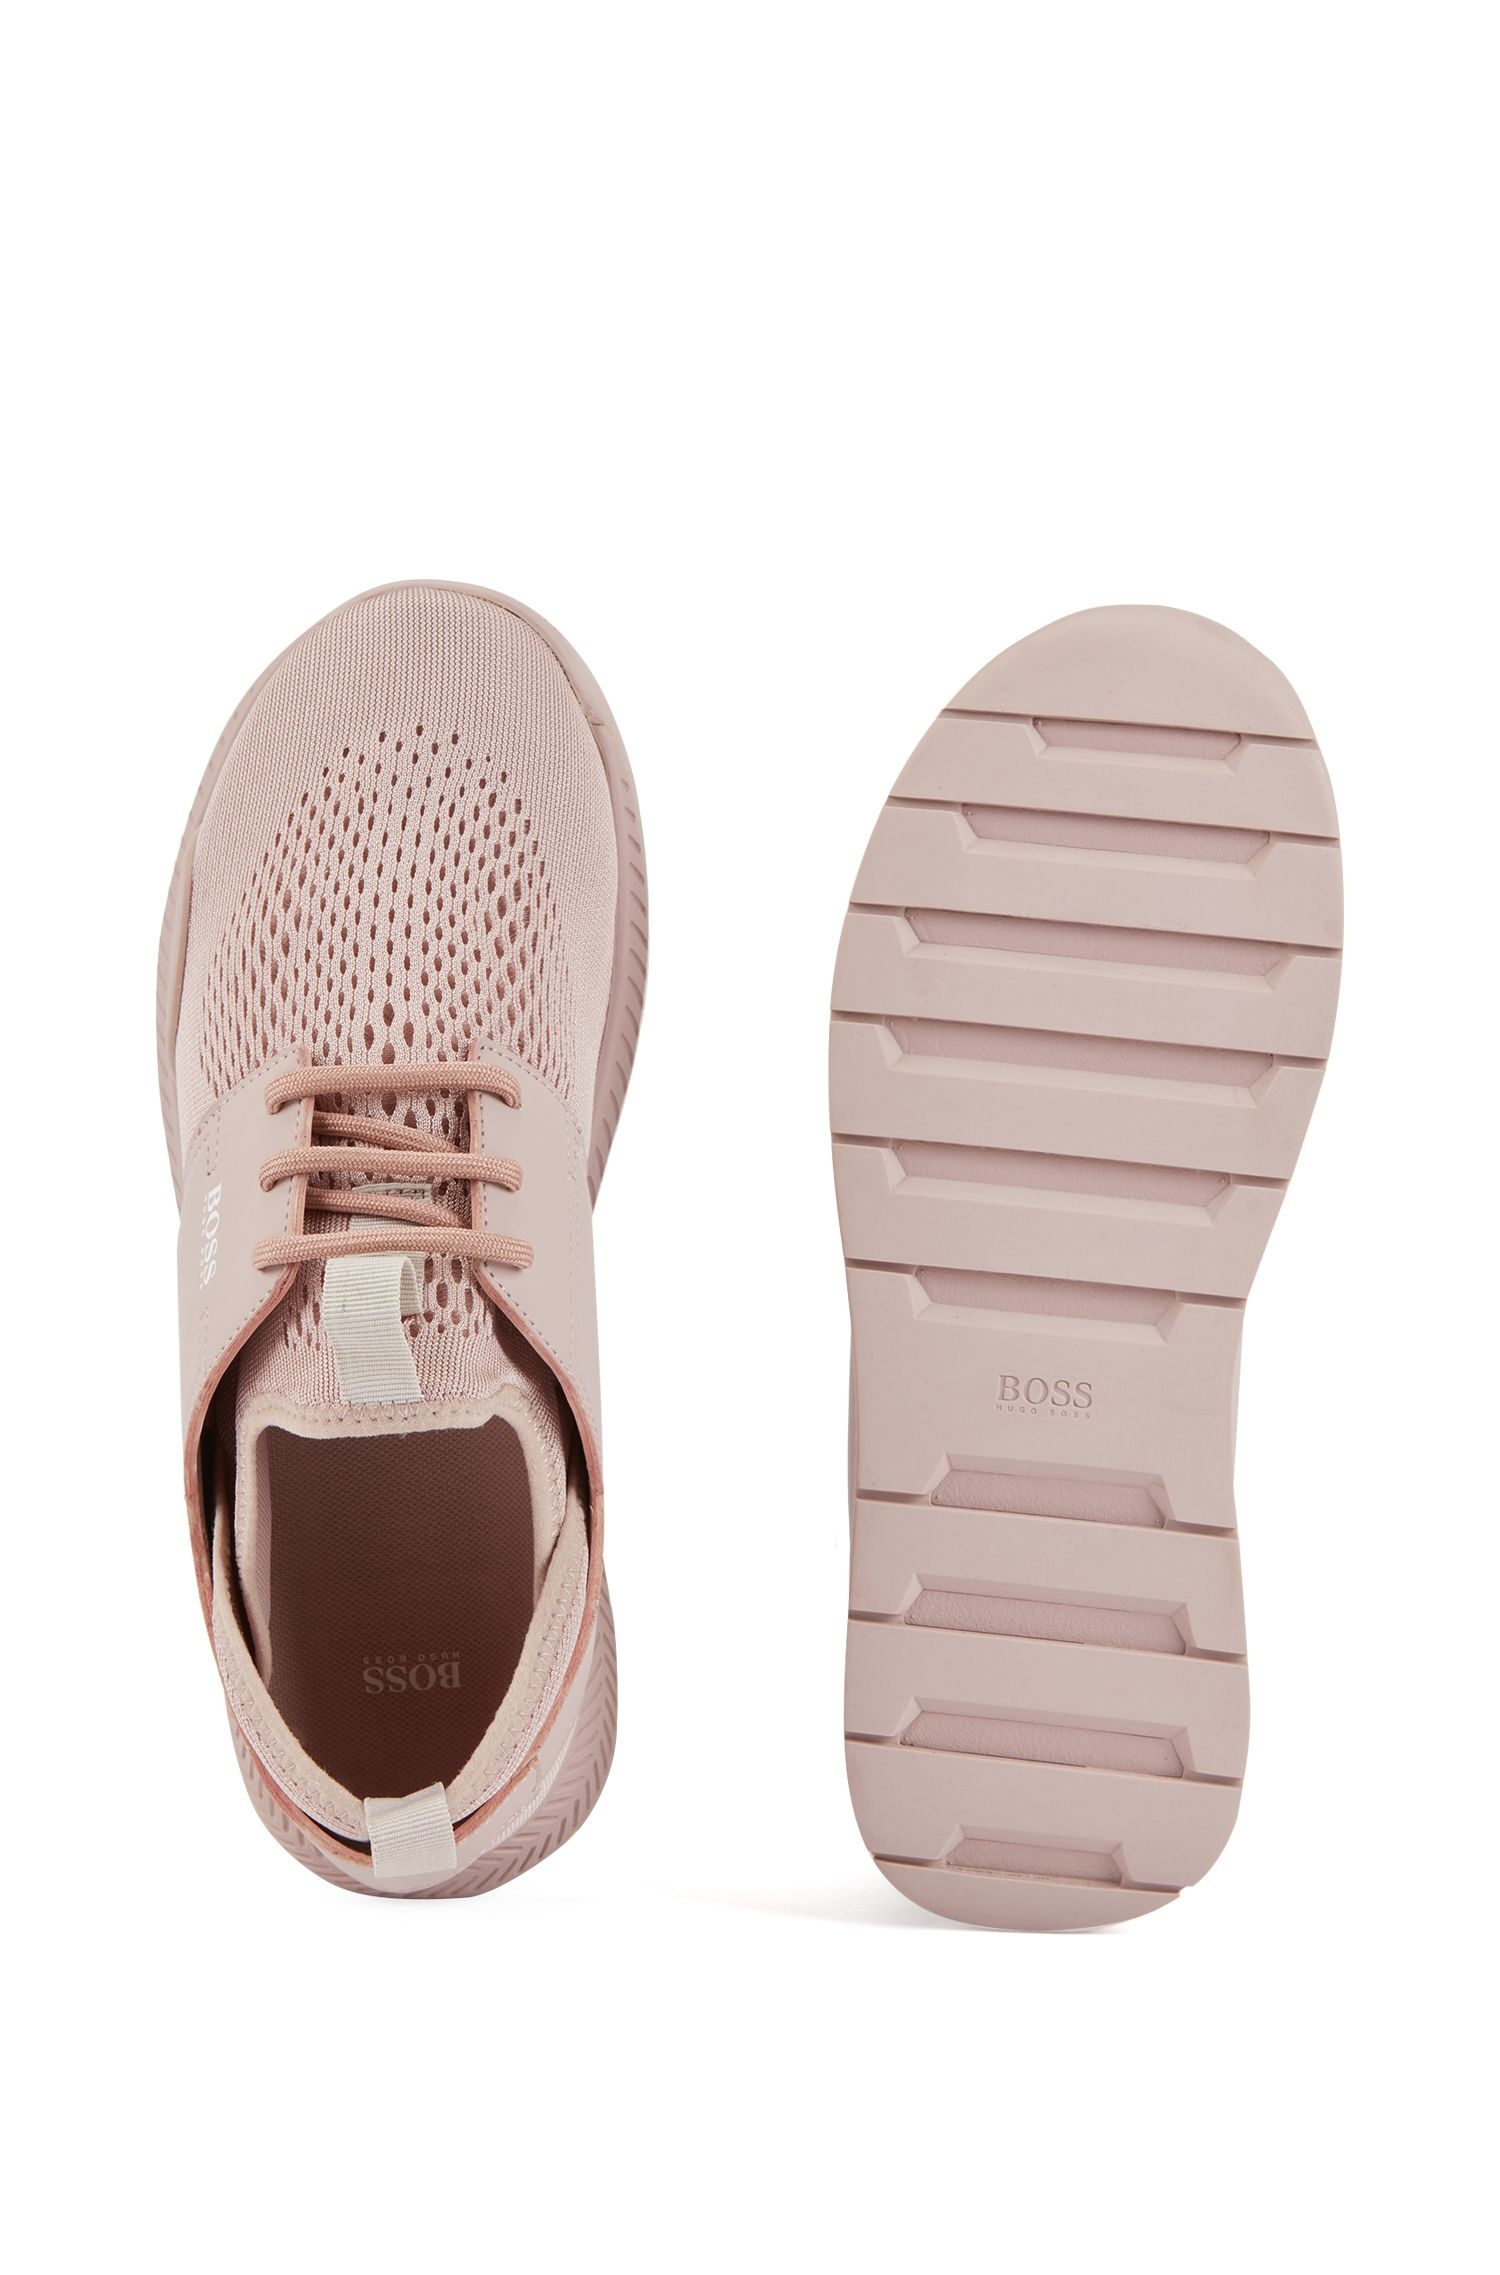 Unisex low-top trainers with perforated mesh uppers, light pink